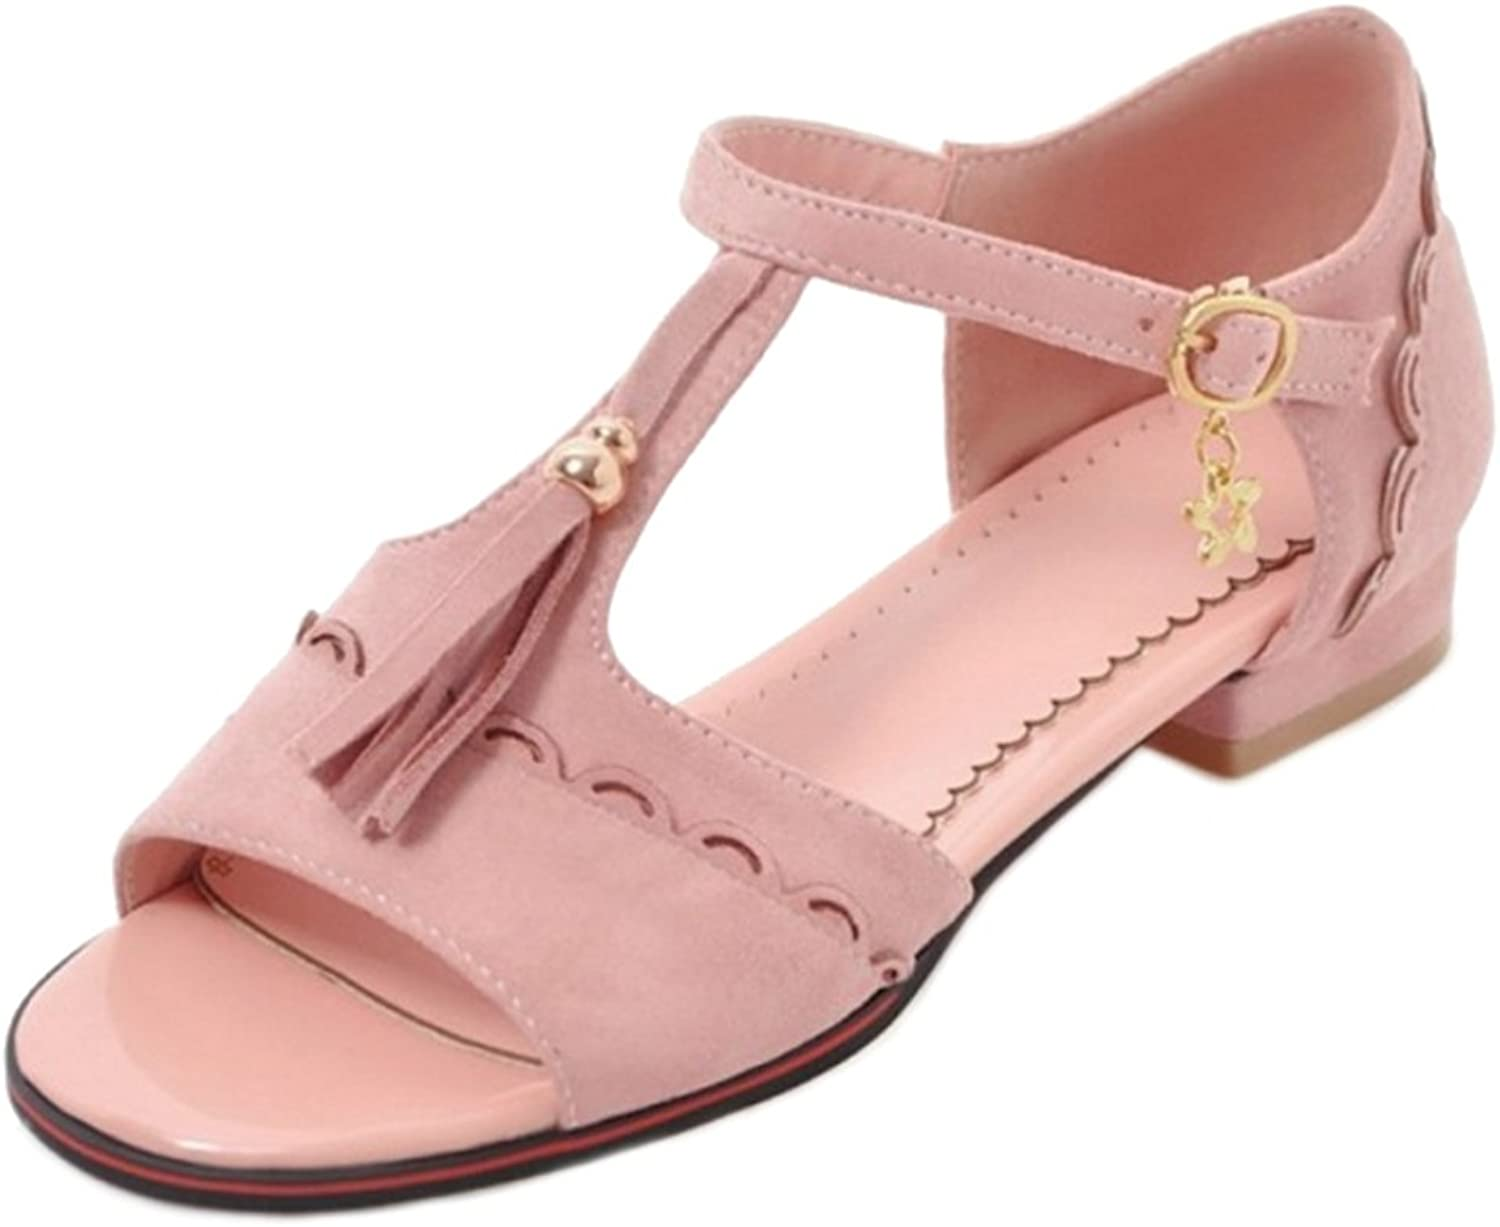 SJJH Casual Sandals with Low Heel and Suede Materail Women Sandals with Large Size Available